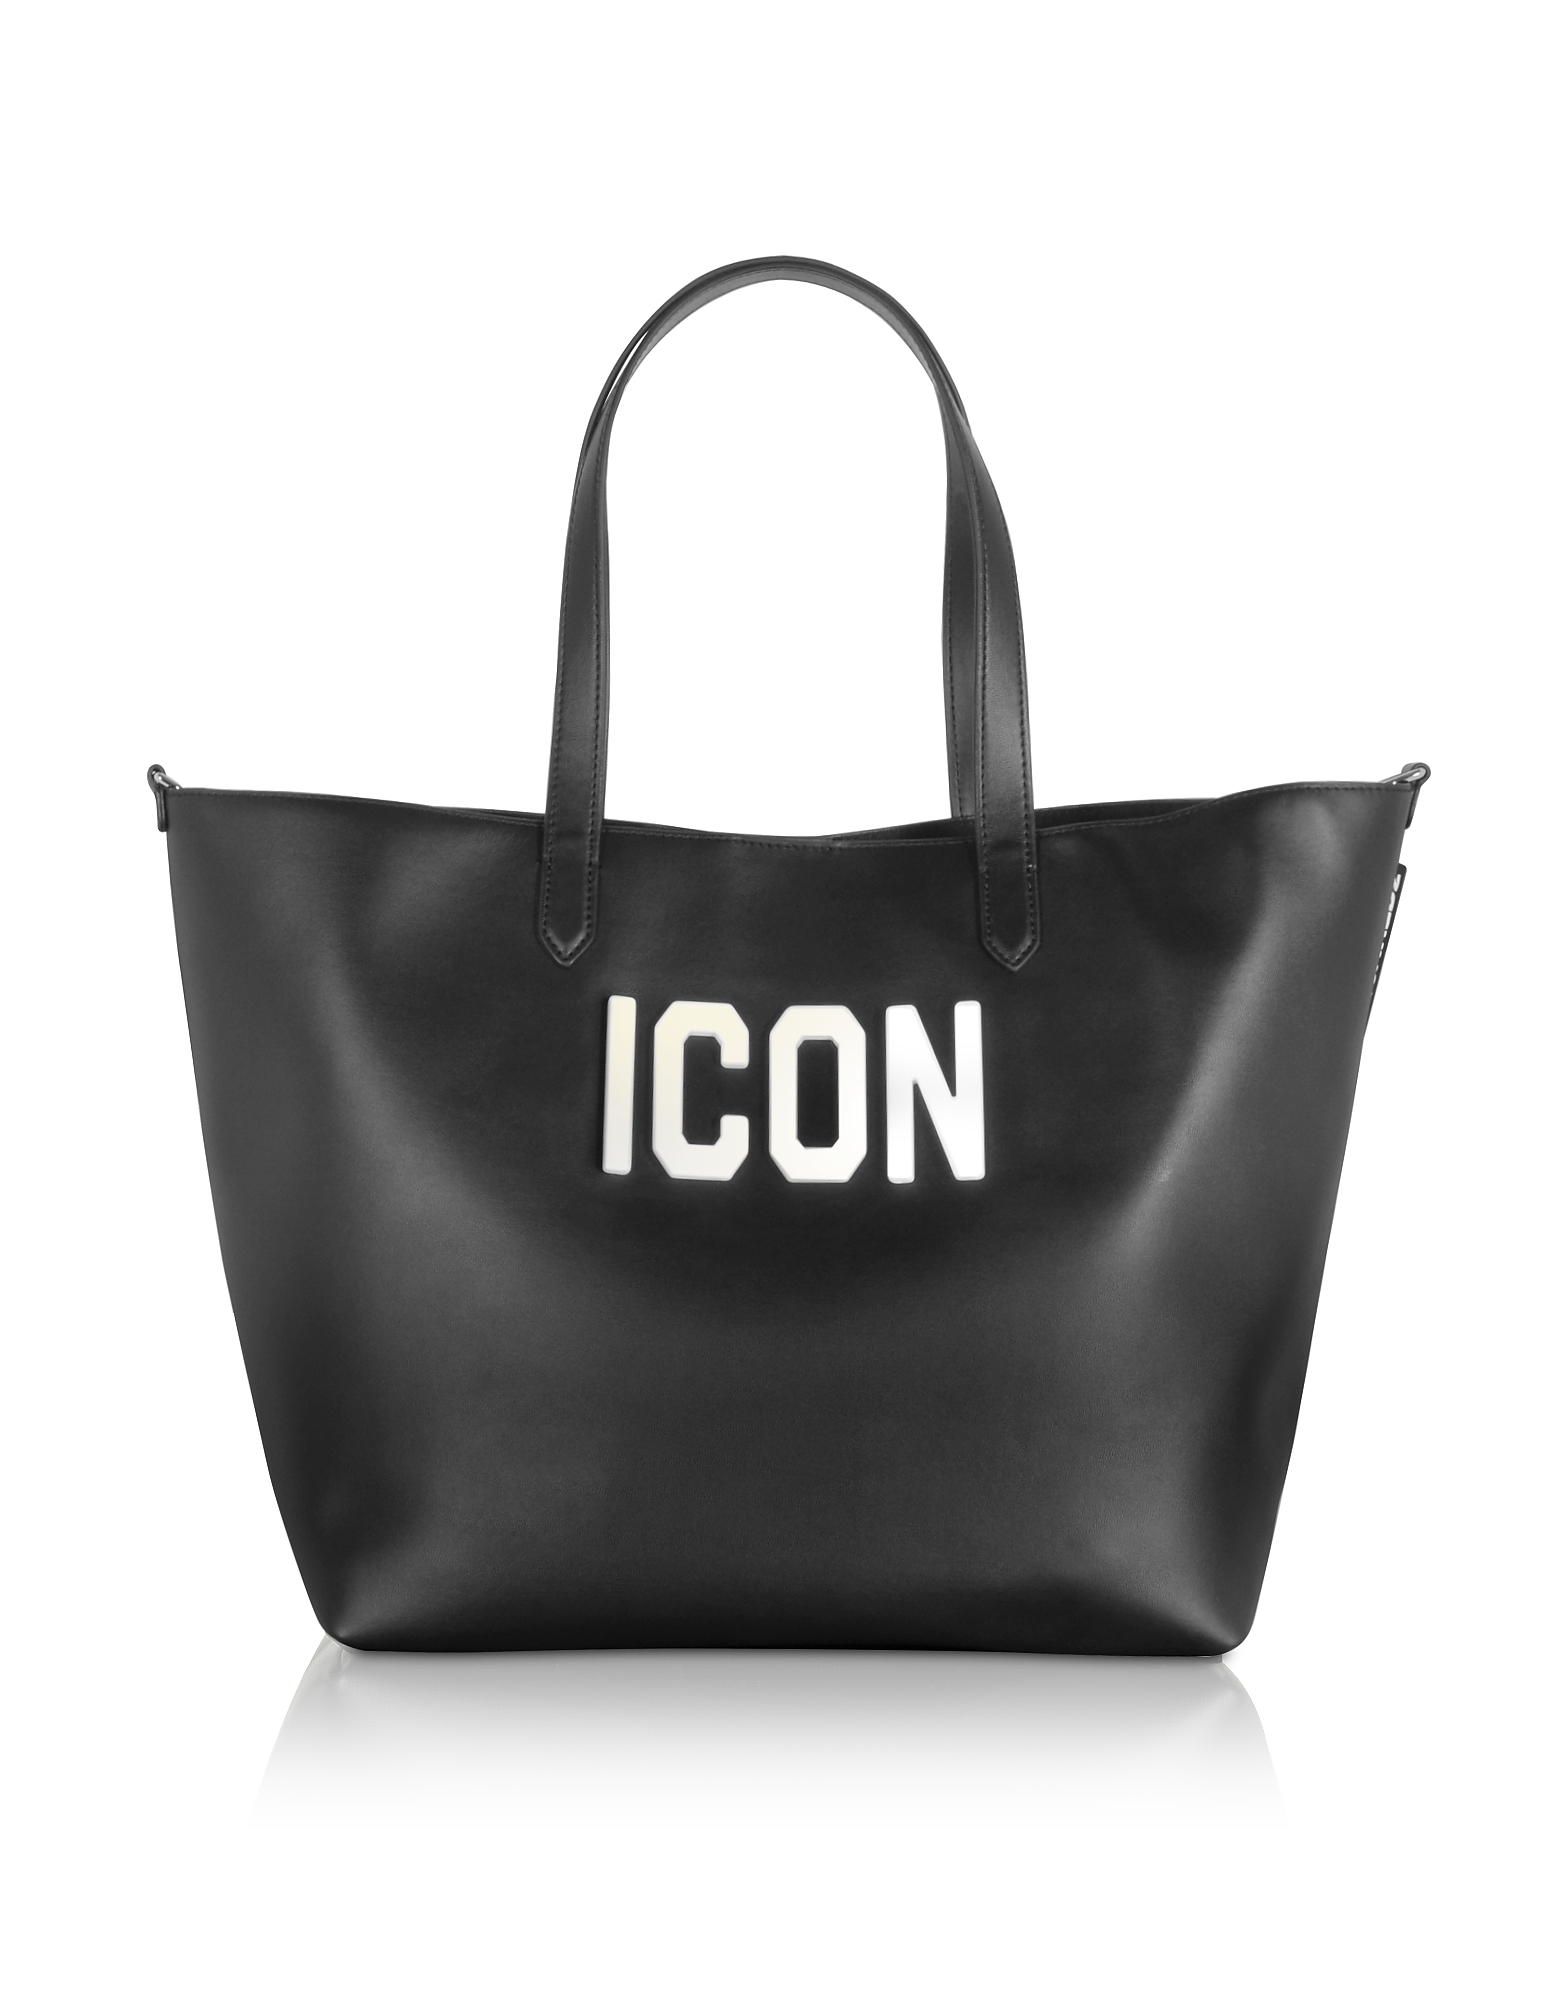 Black Leather and Plexy Icon Tote Bag